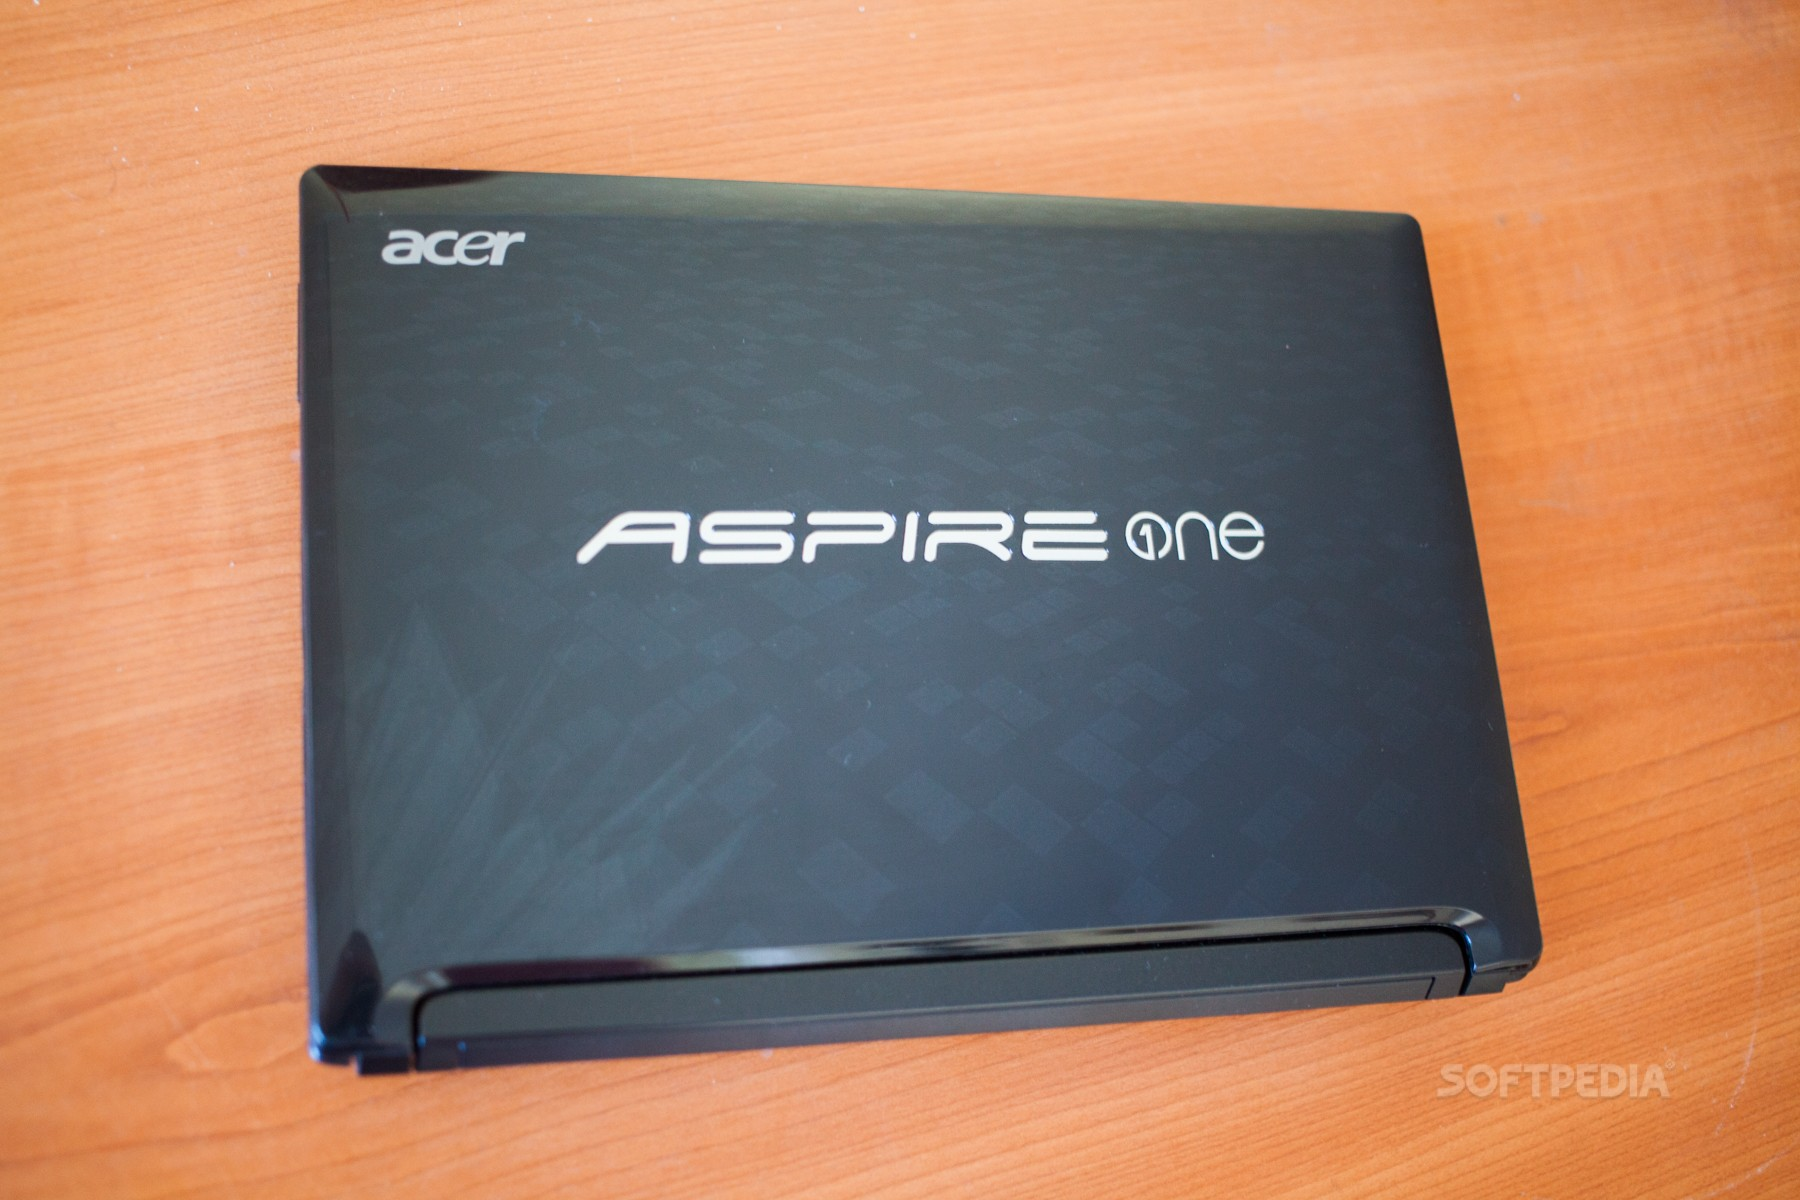 acer aspire one d255e windows 10